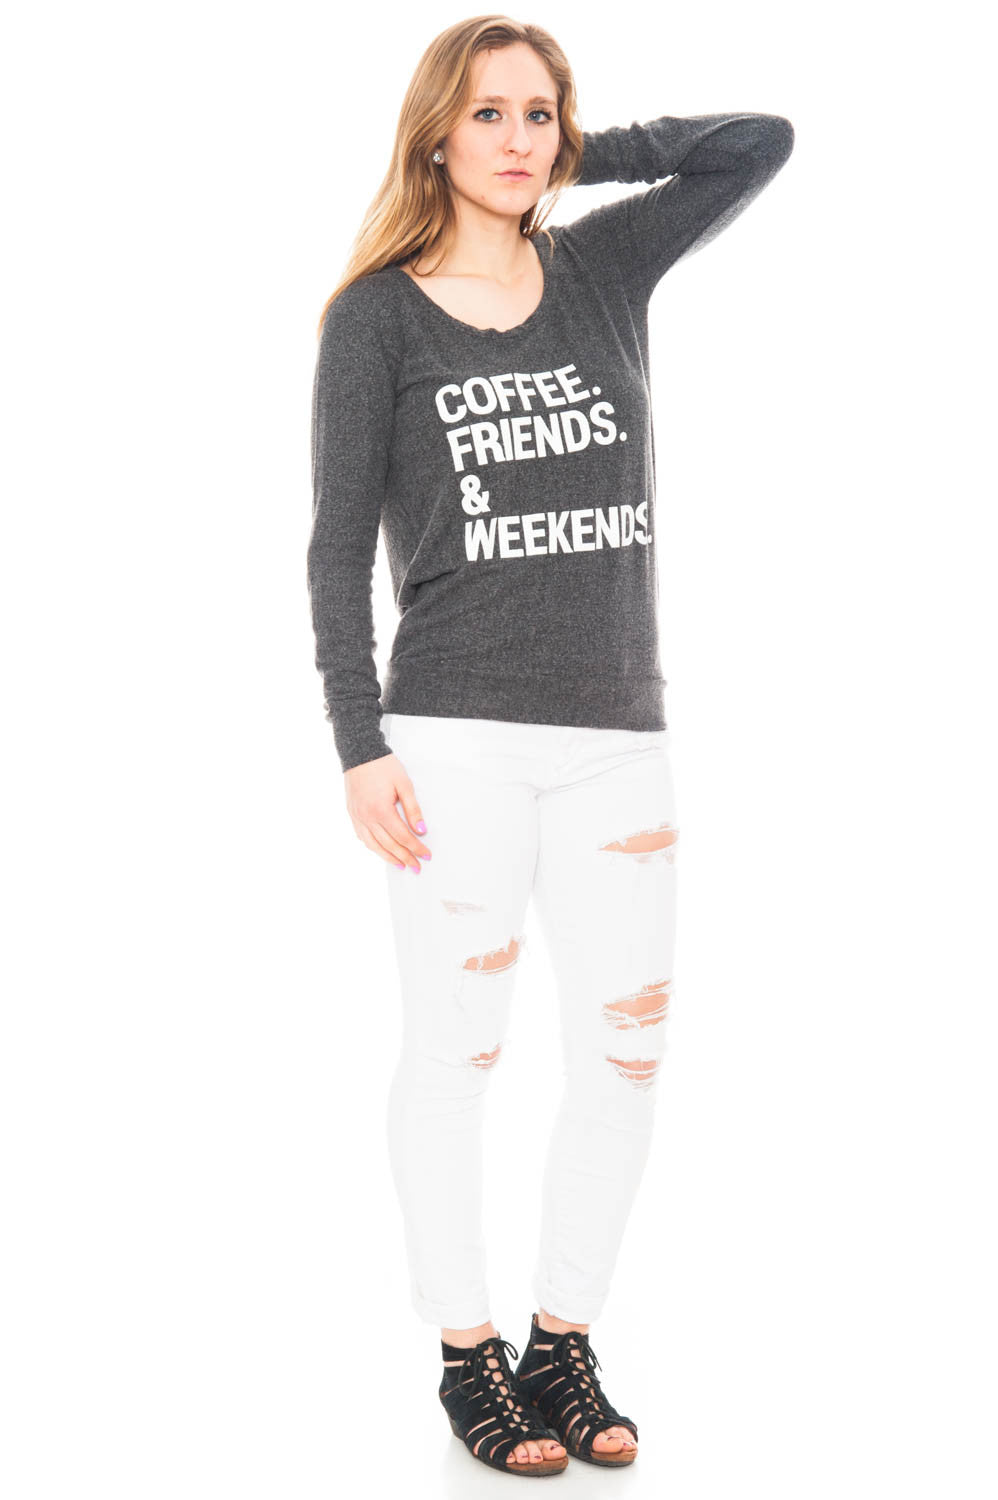 Sweater - Coffee. Friends. & Weekends Open Back Top by Chaser